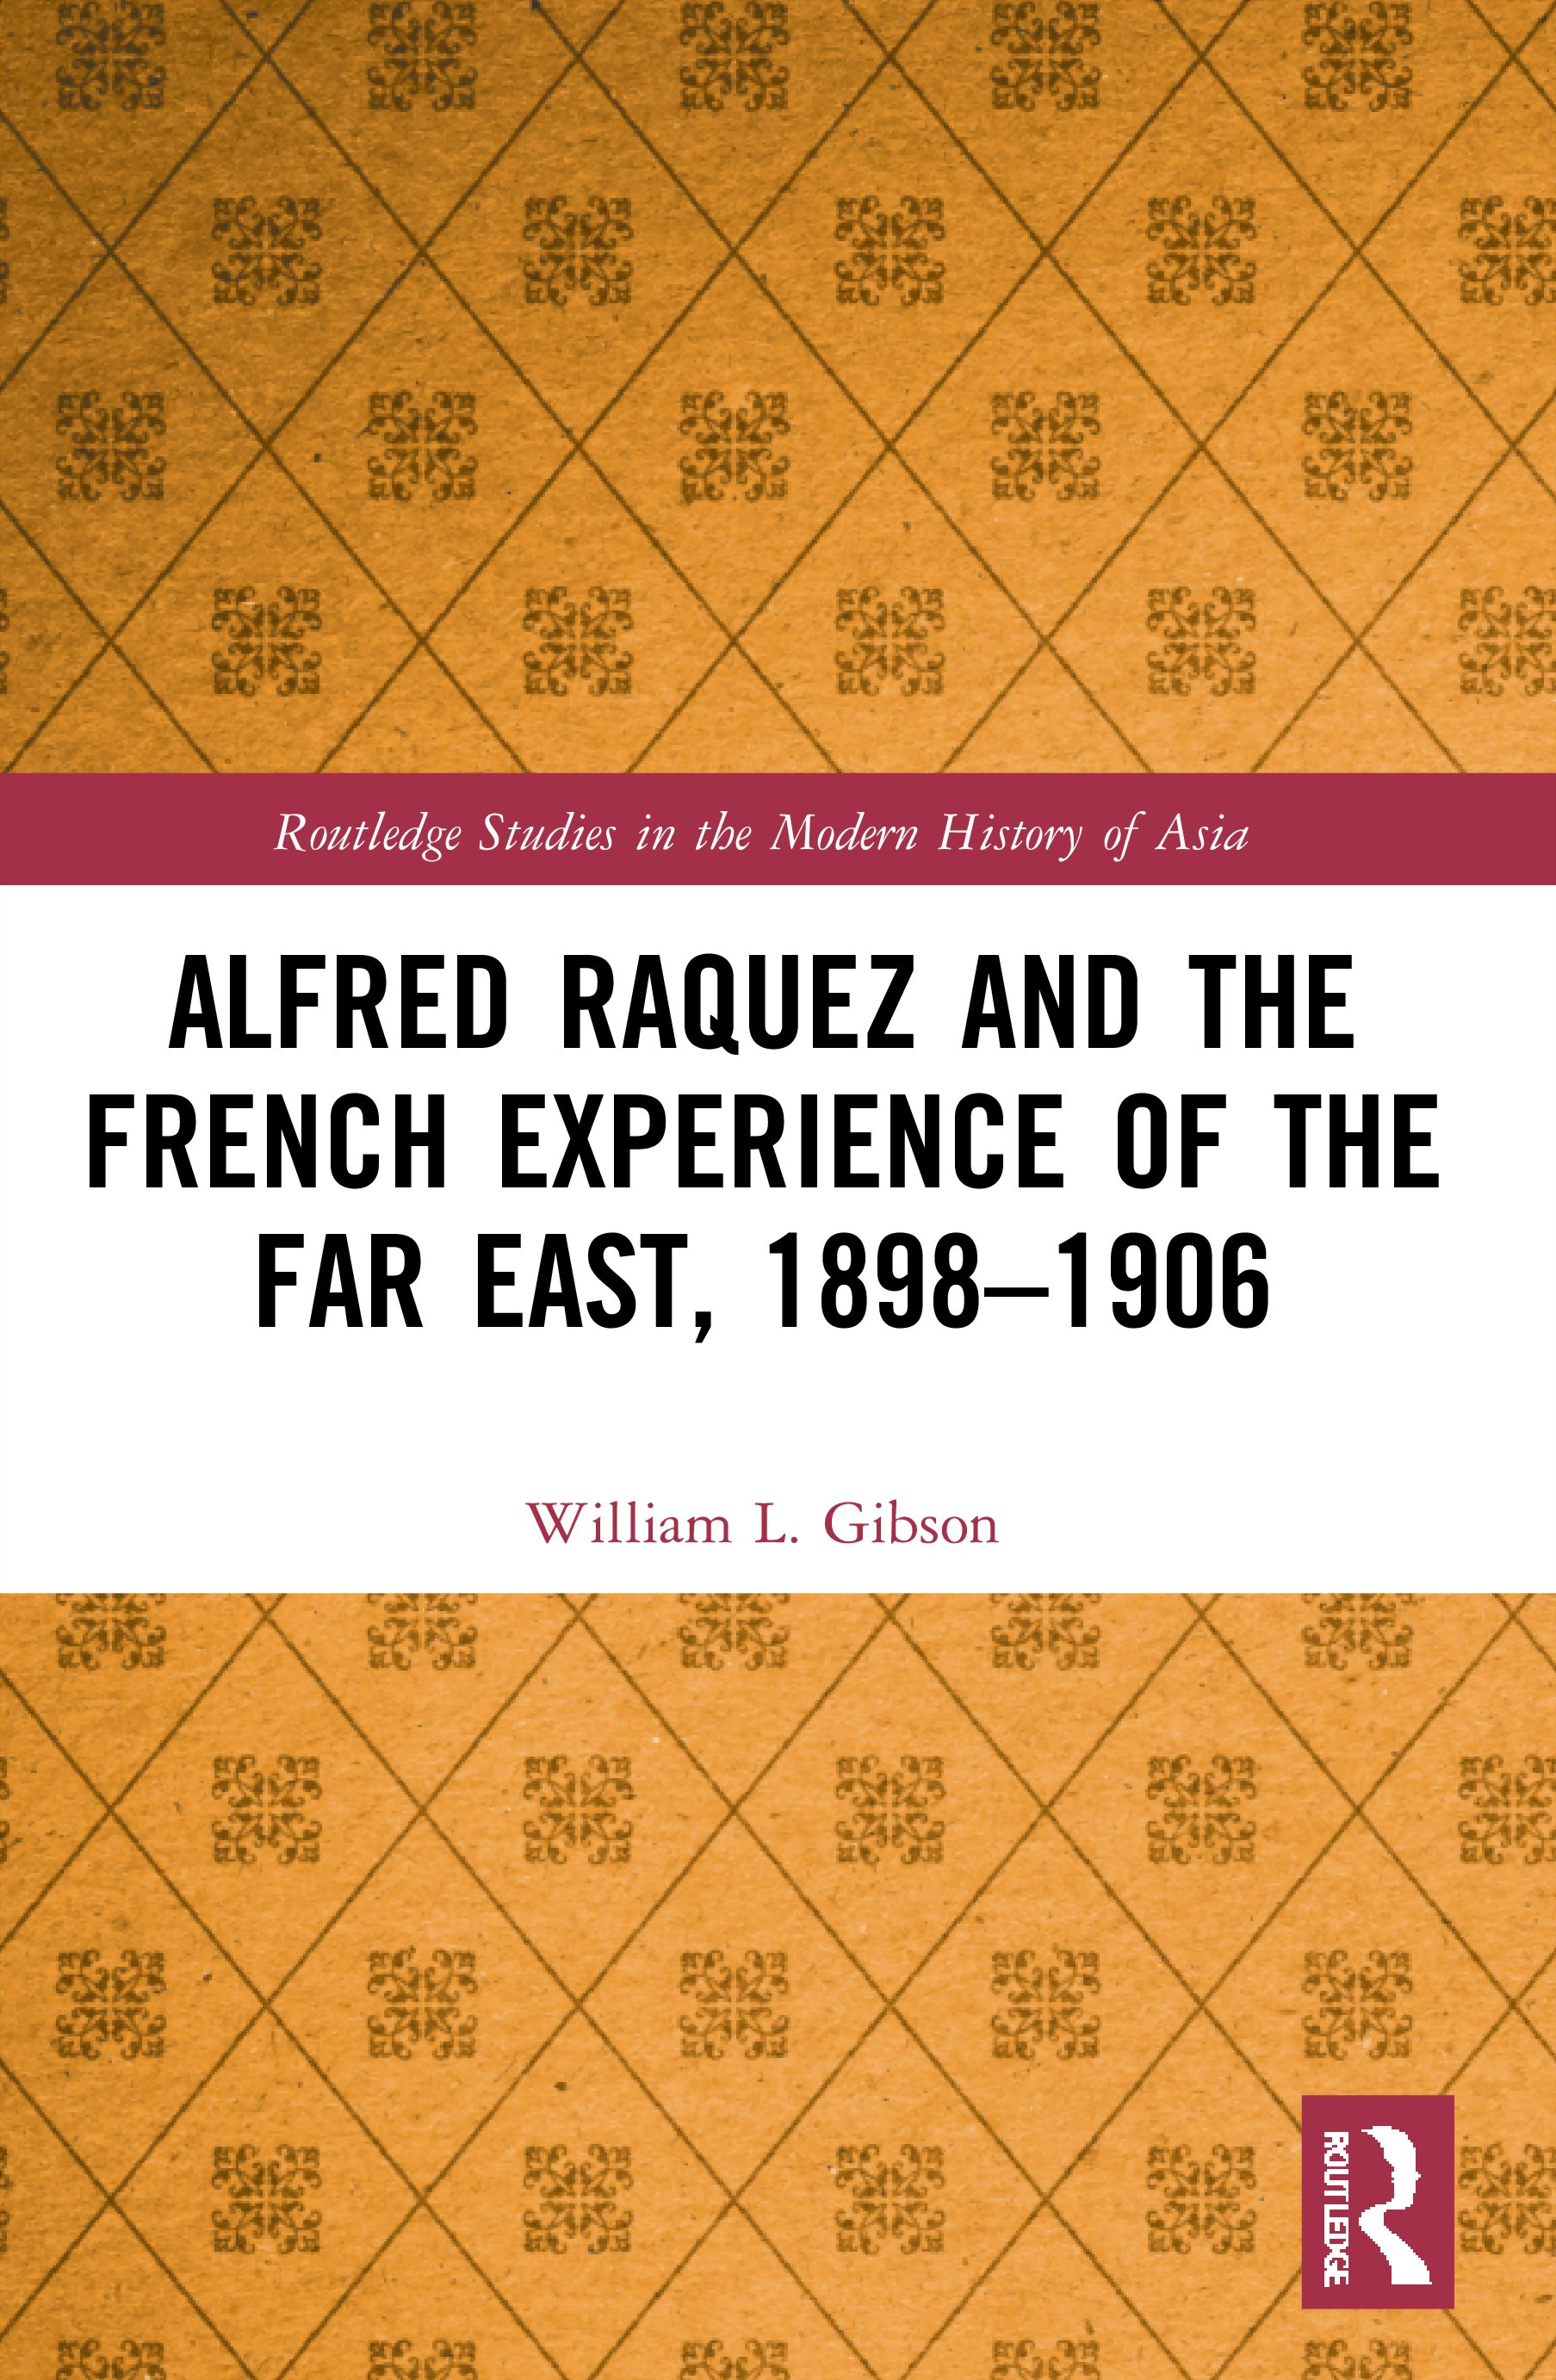 Alfred Raquez and the French Experience of the Far East, 1898–1906